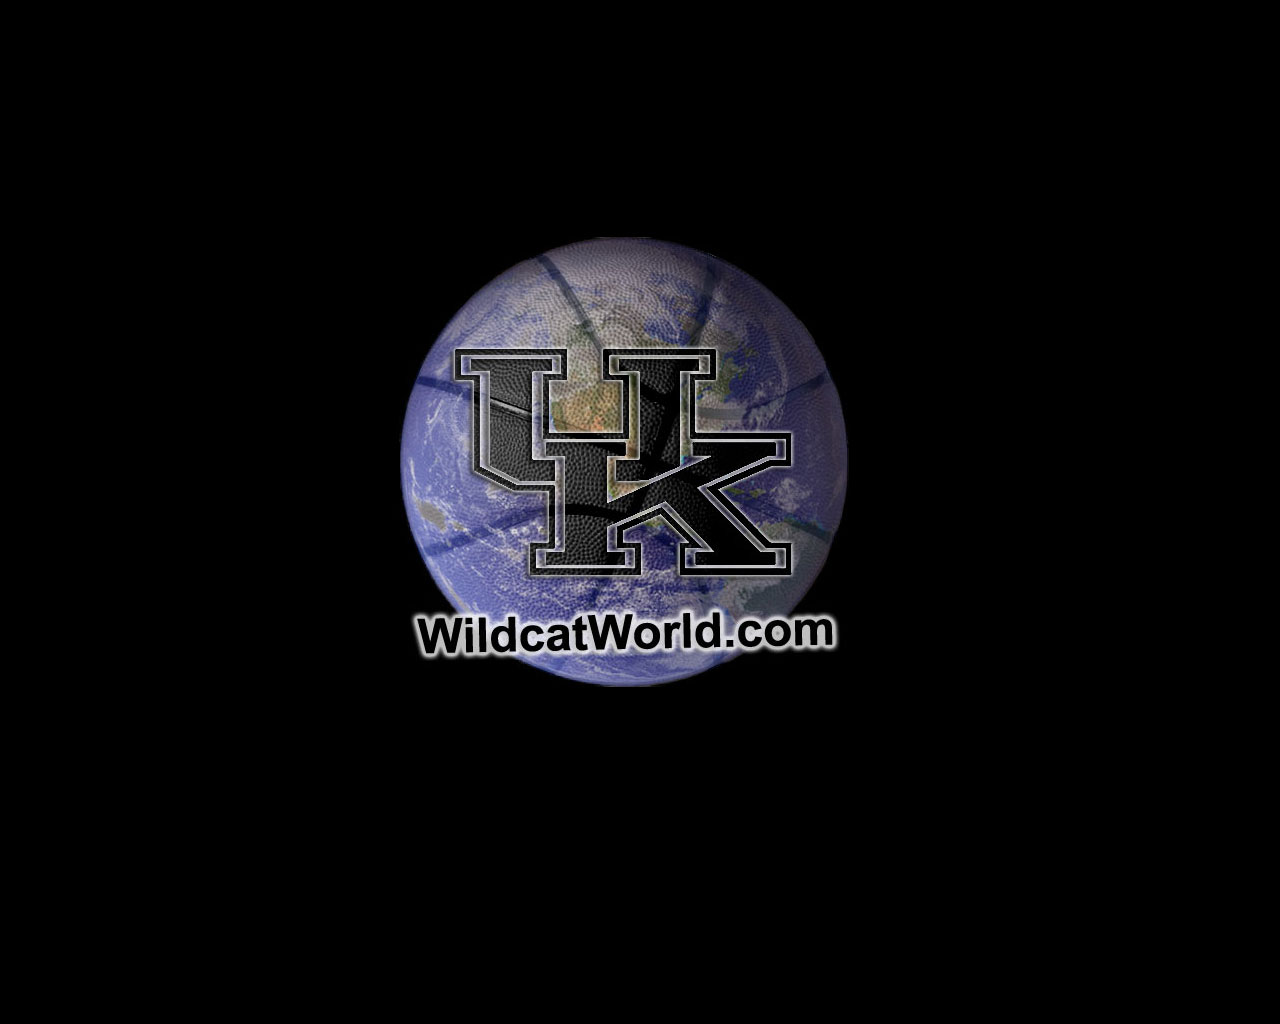 wildcatworld 1280x1024